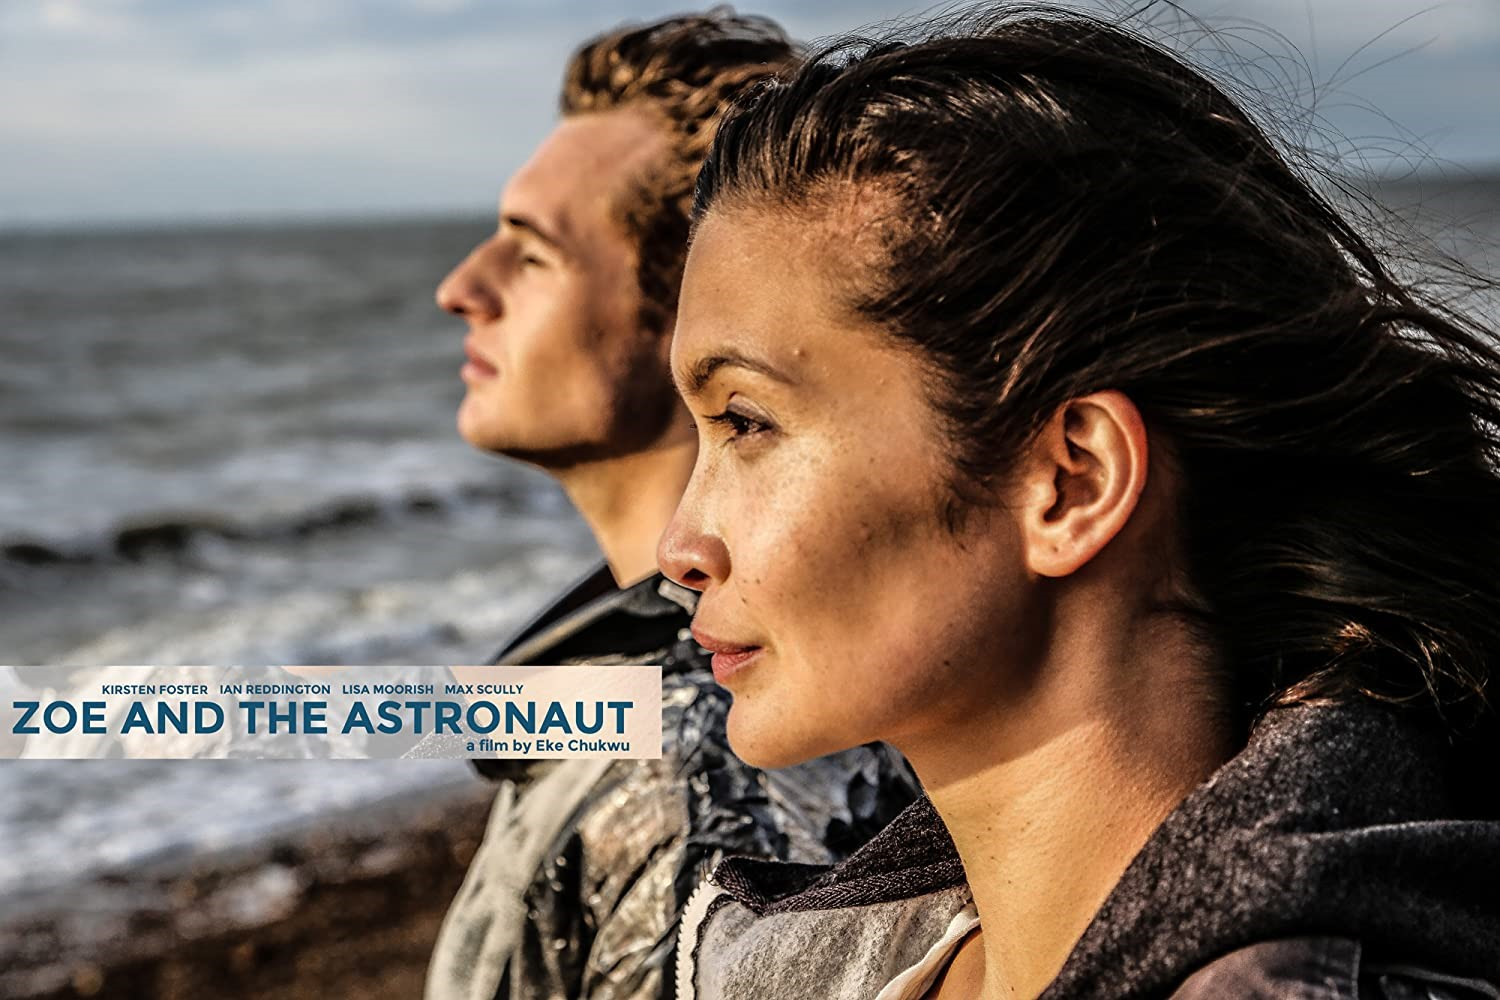 Zoe and the Astronaut Film poster depicting close up, side profile shot of a Max Scully as the Astronaut and Kirsten Foster as Zoe looking out to sea. Zoe and the astronaut reads in blue in the centre